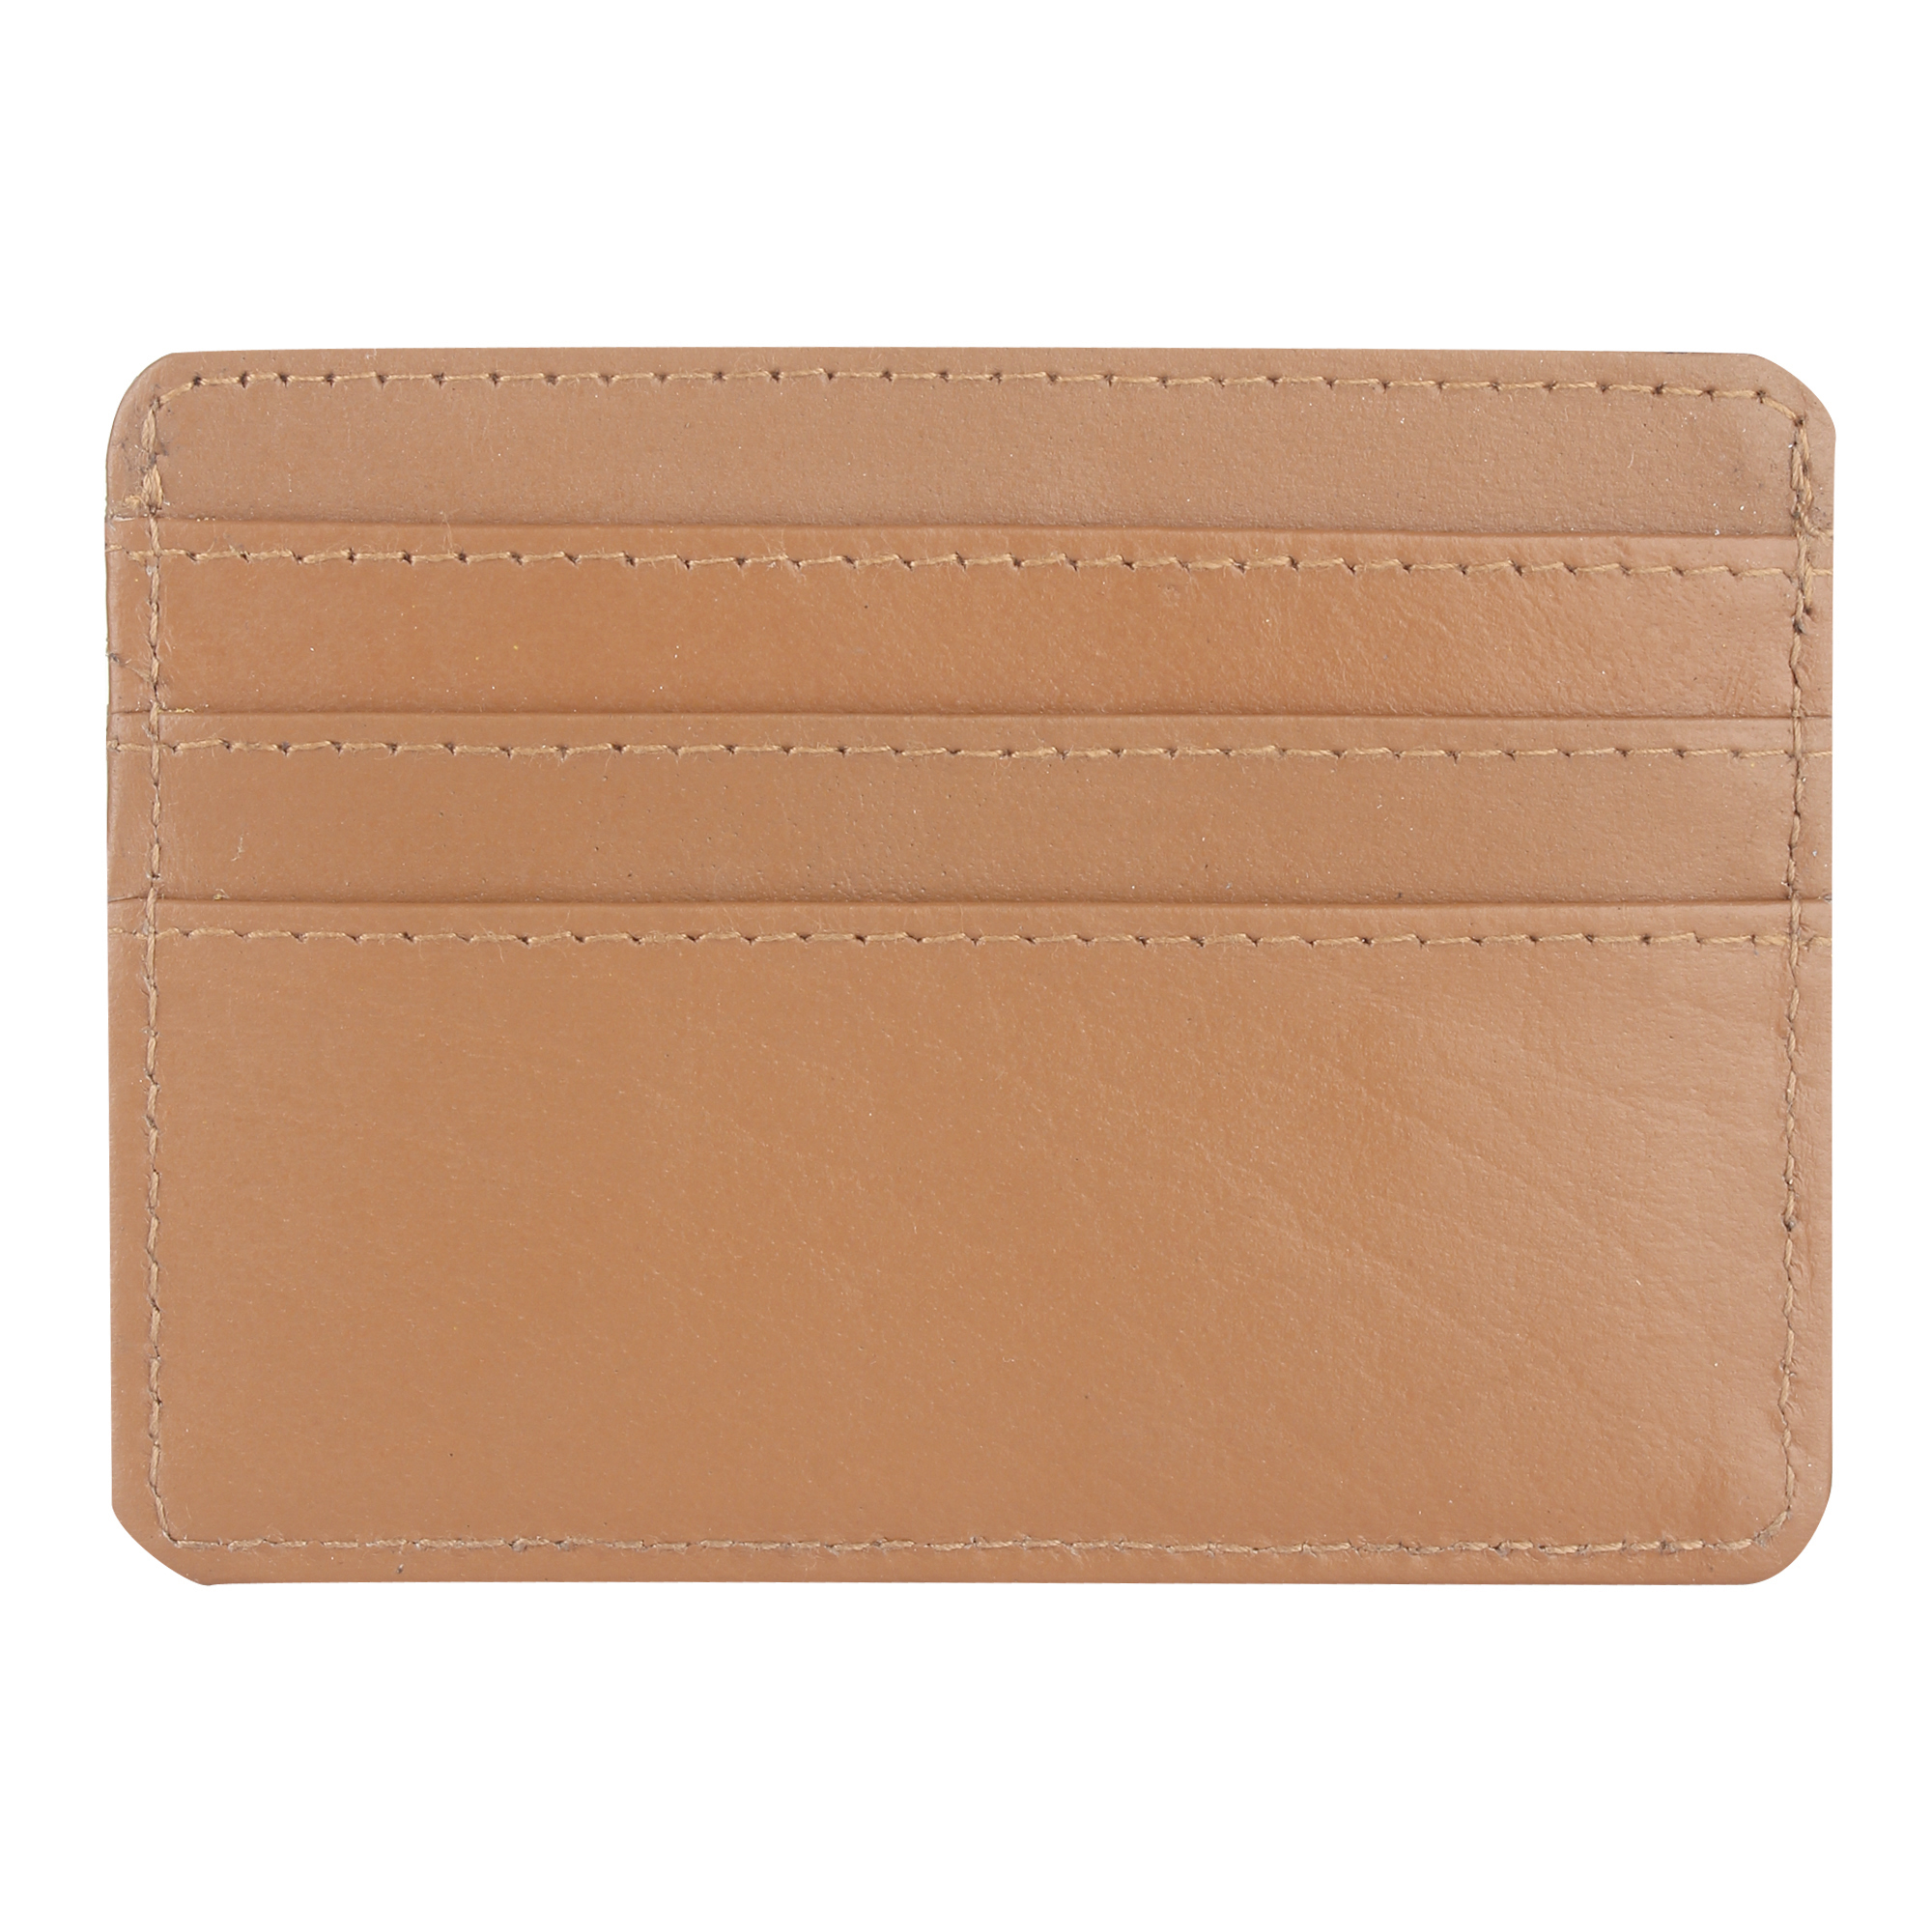 Leather Wallets Manufacturers in Marseille, Leather Wallets Suppliers in Marseille, Leather Wallets Wholesalers in Marseille, Leather Wallets Traders in Marseille